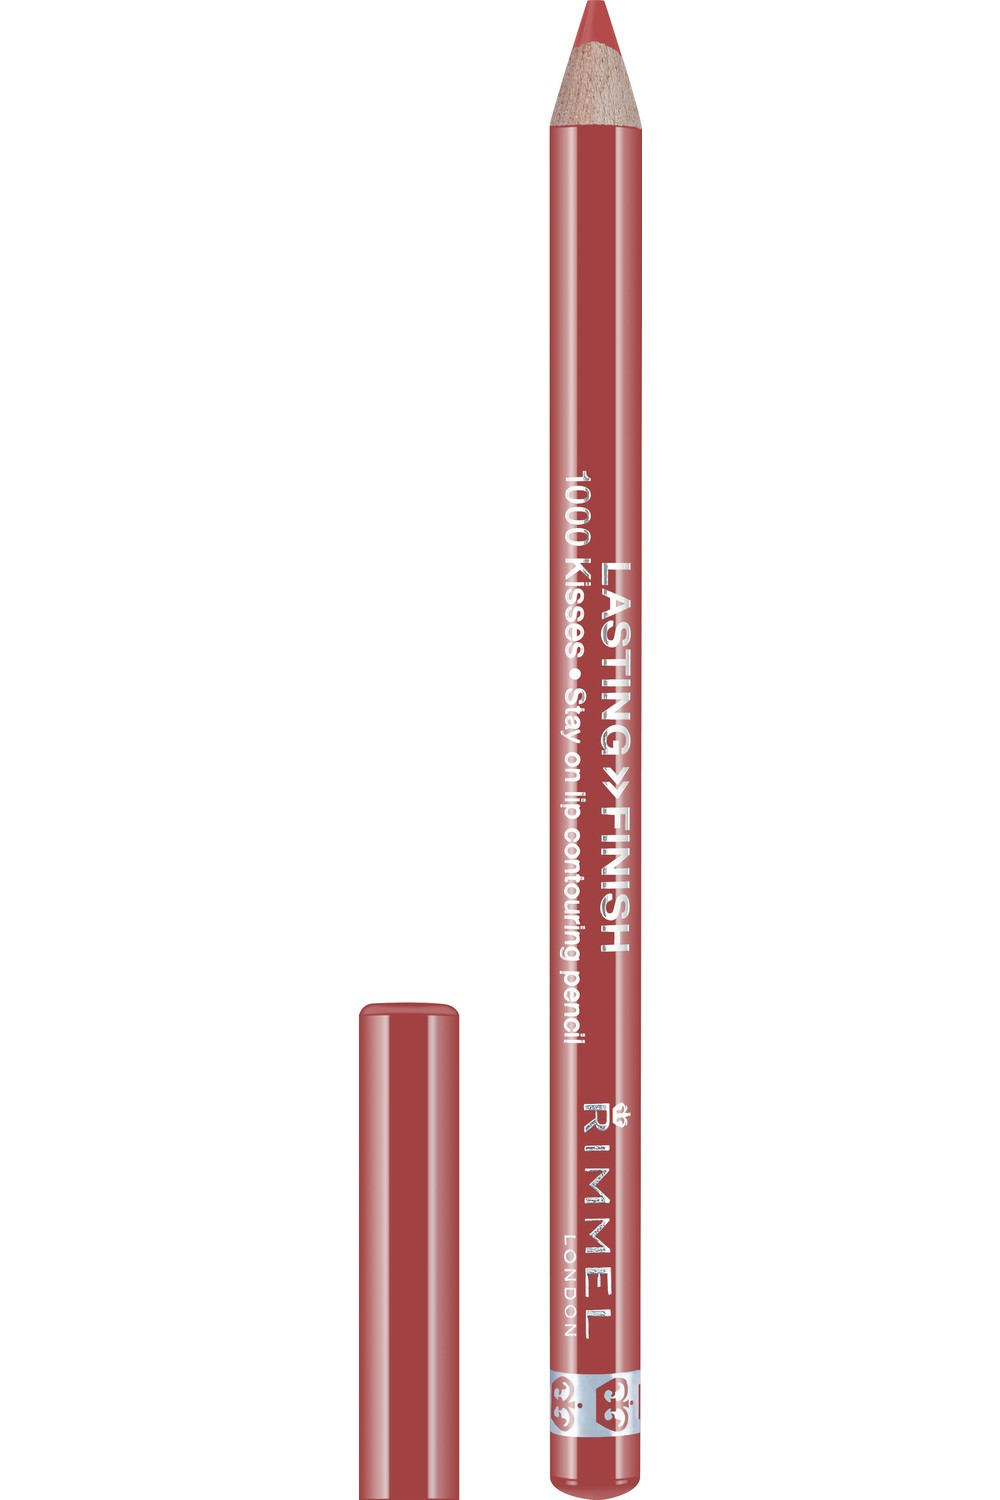 Rimmel London Lasting Finish Lip Liner 081 Nude